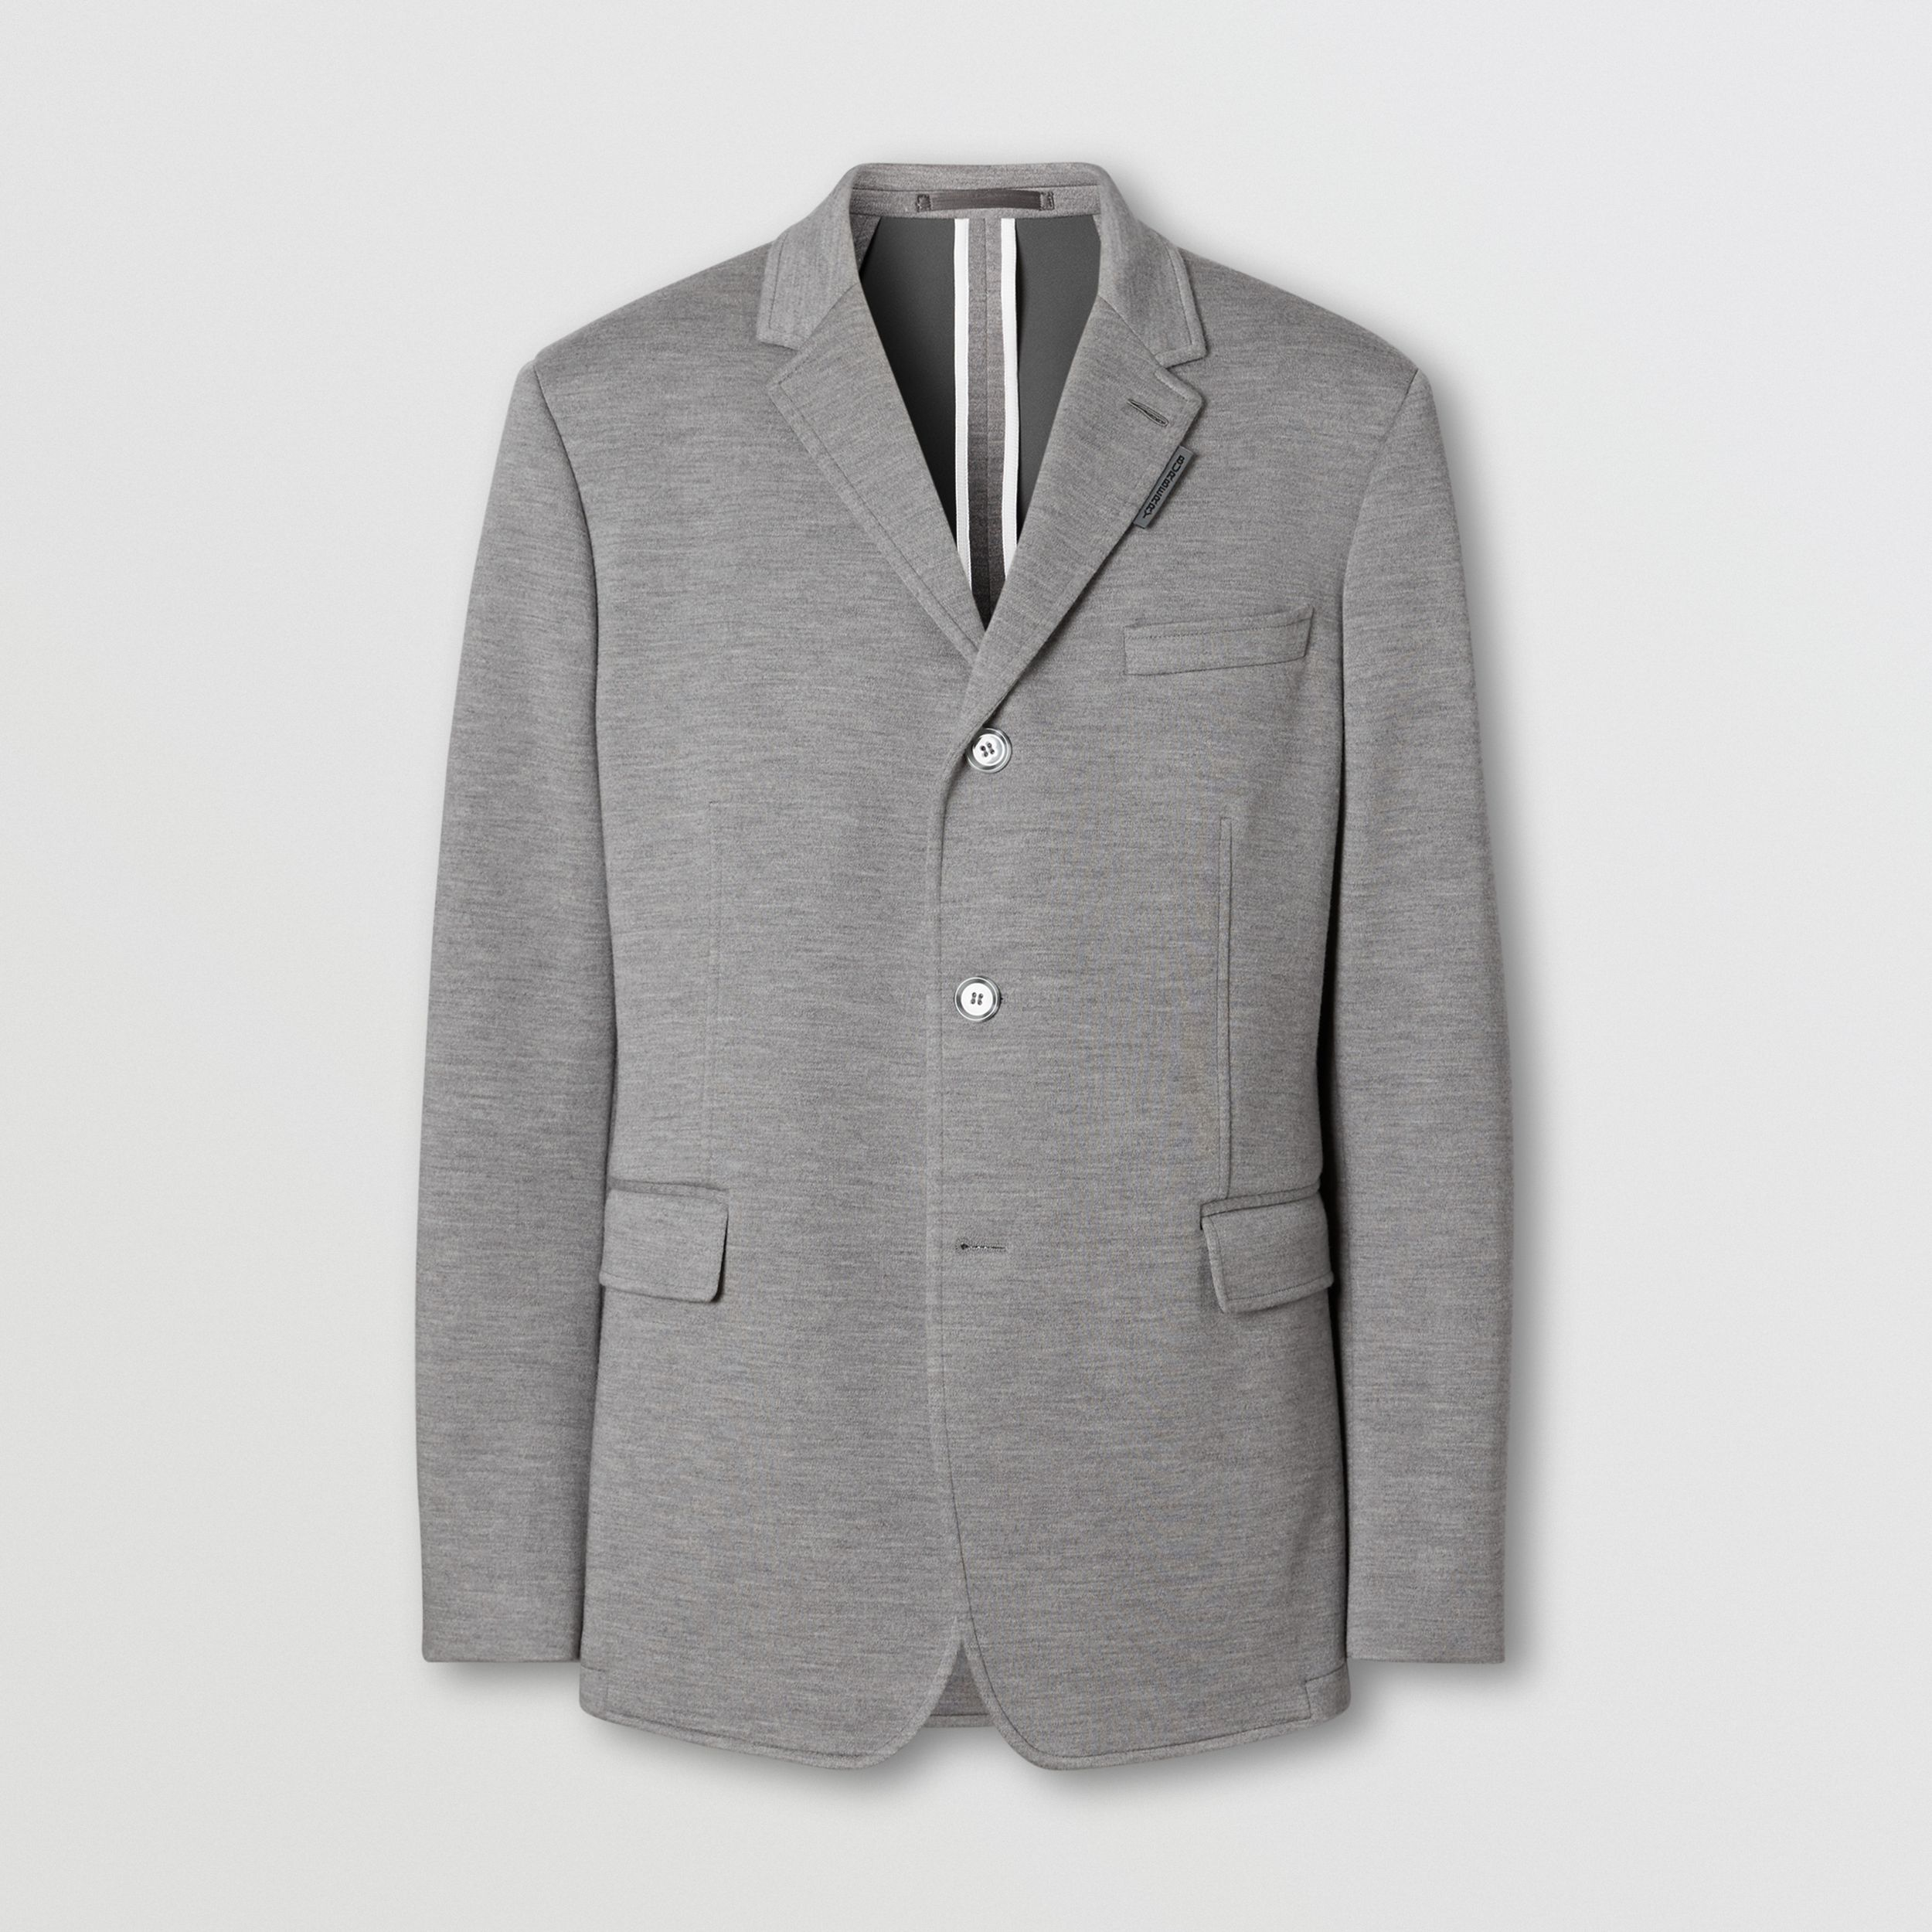 Relaxed Fit Wool Jersey Tailored Jacket in Cloud Grey - Men | Burberry - 1